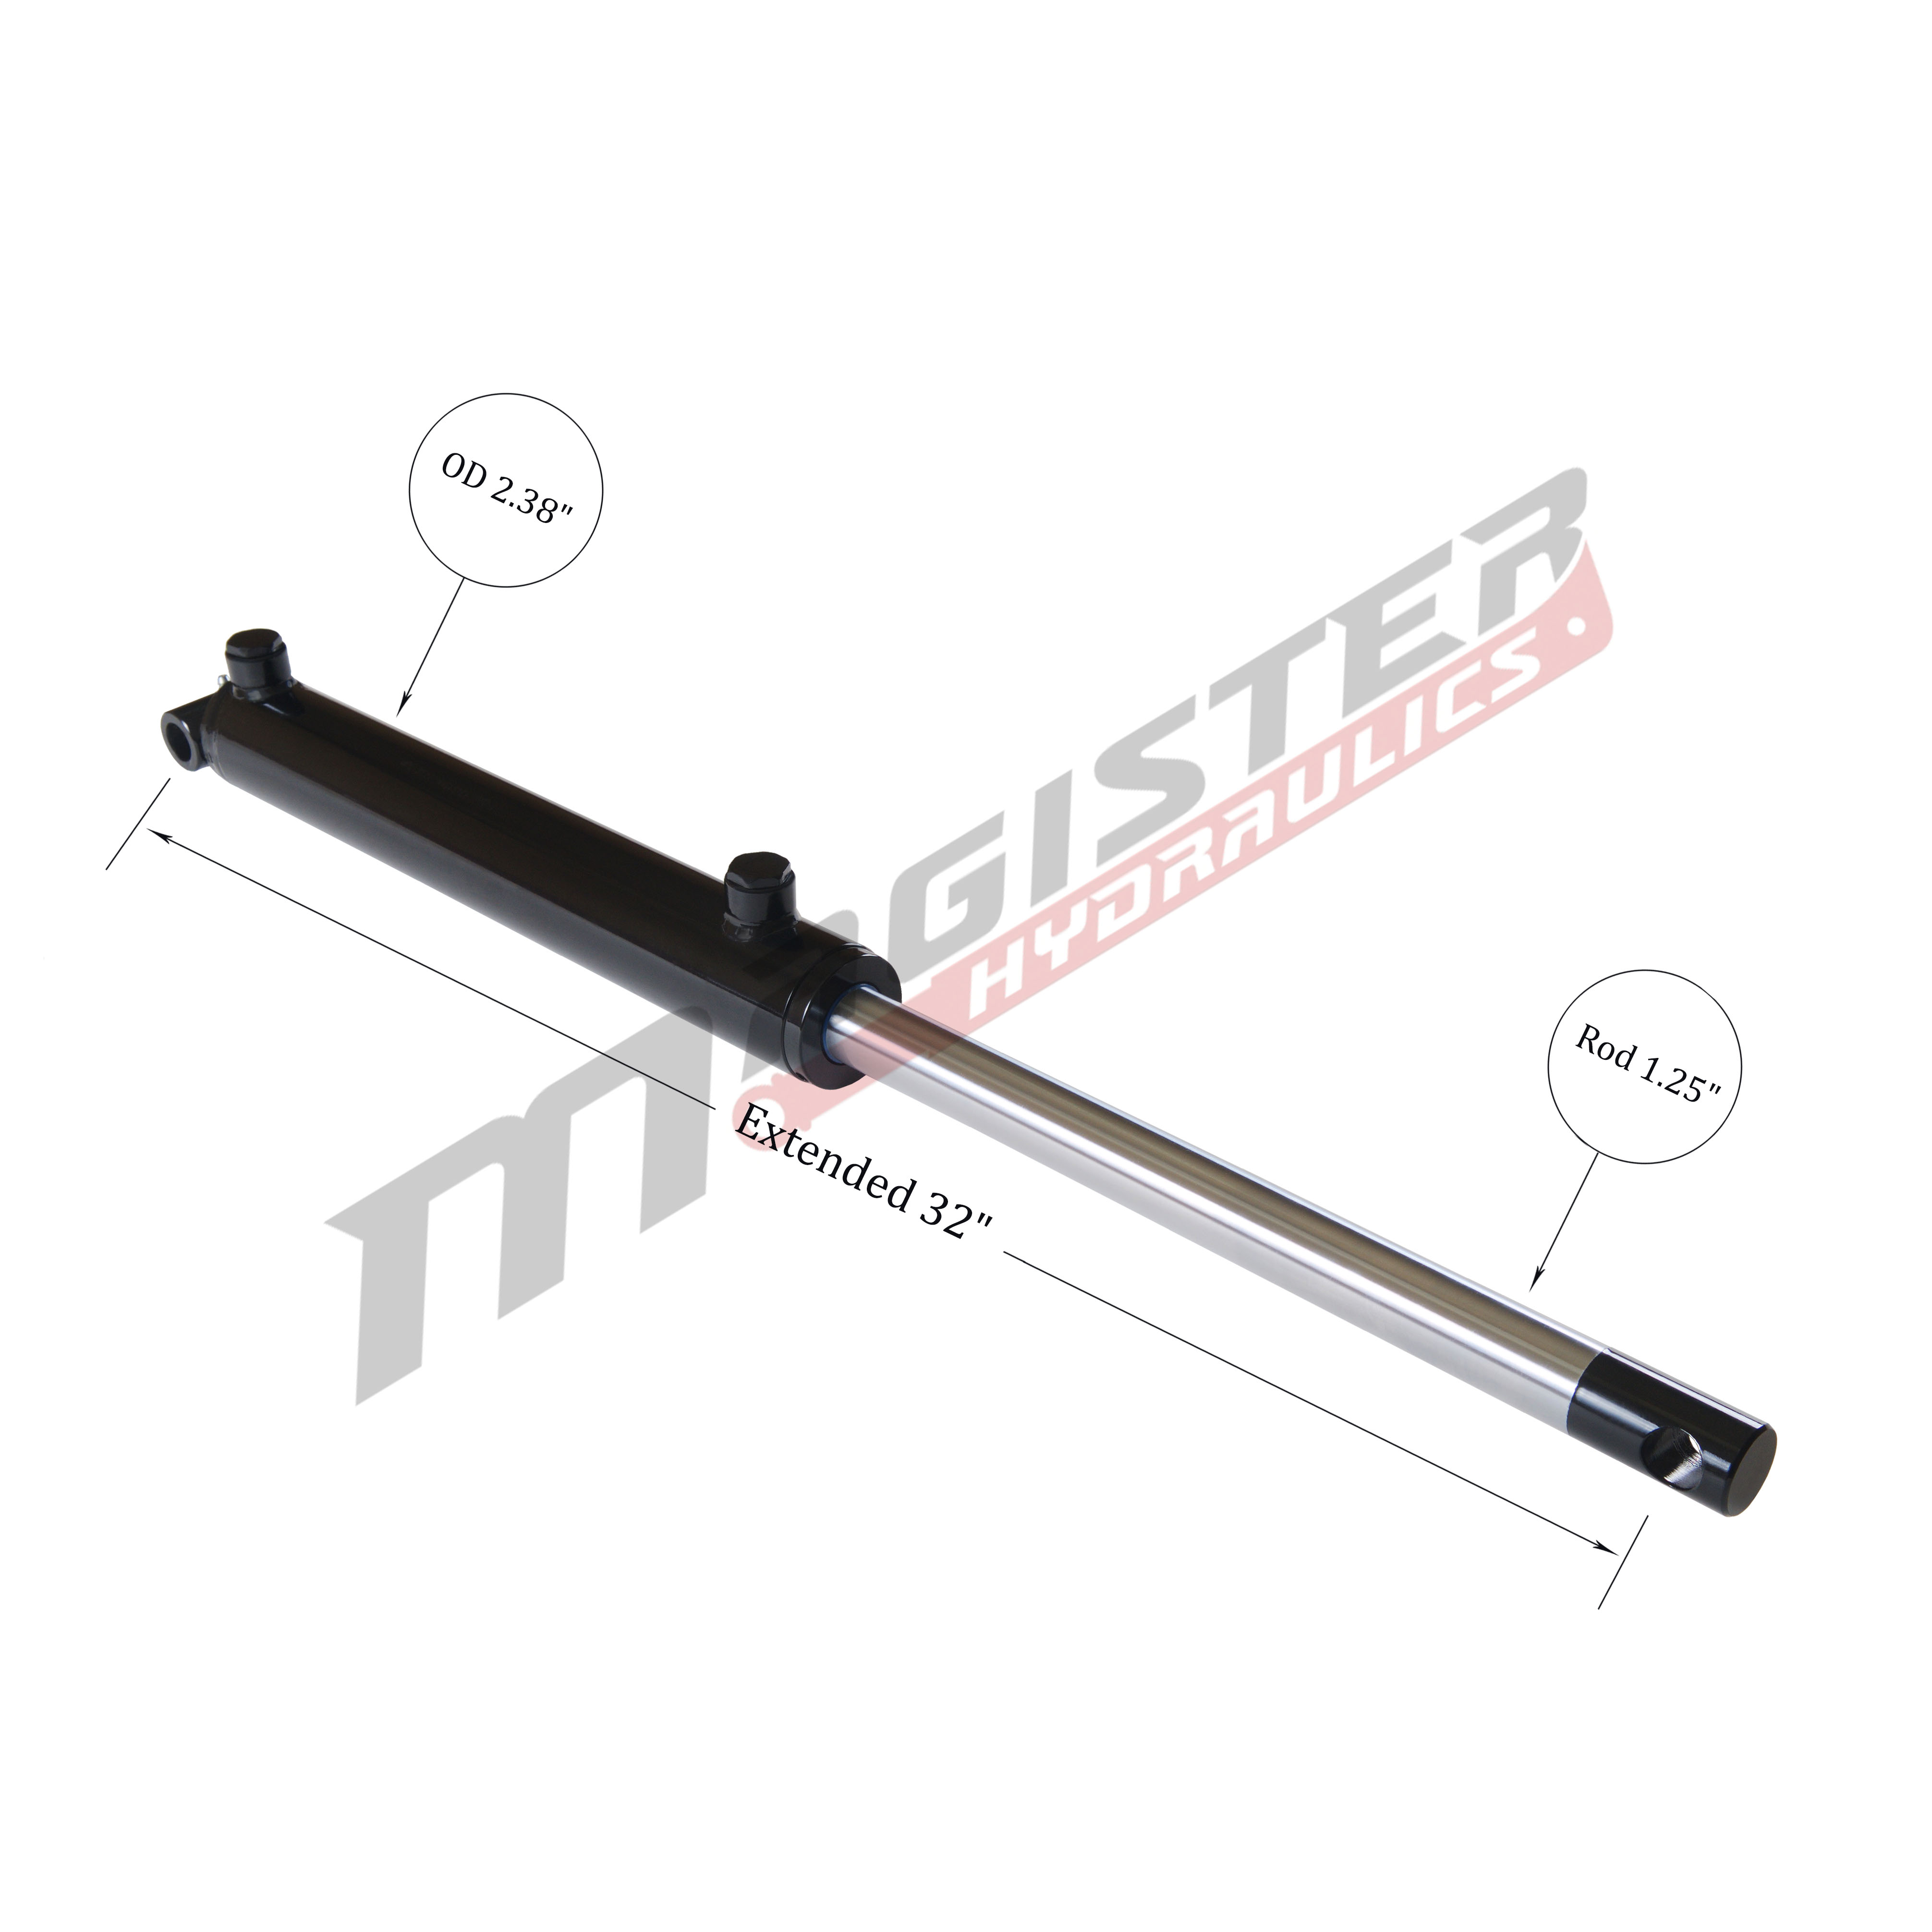 2 bore x 12 stroke hydraulic cylinder, welded pin eye double acting cylinder   Magister Hydraulics